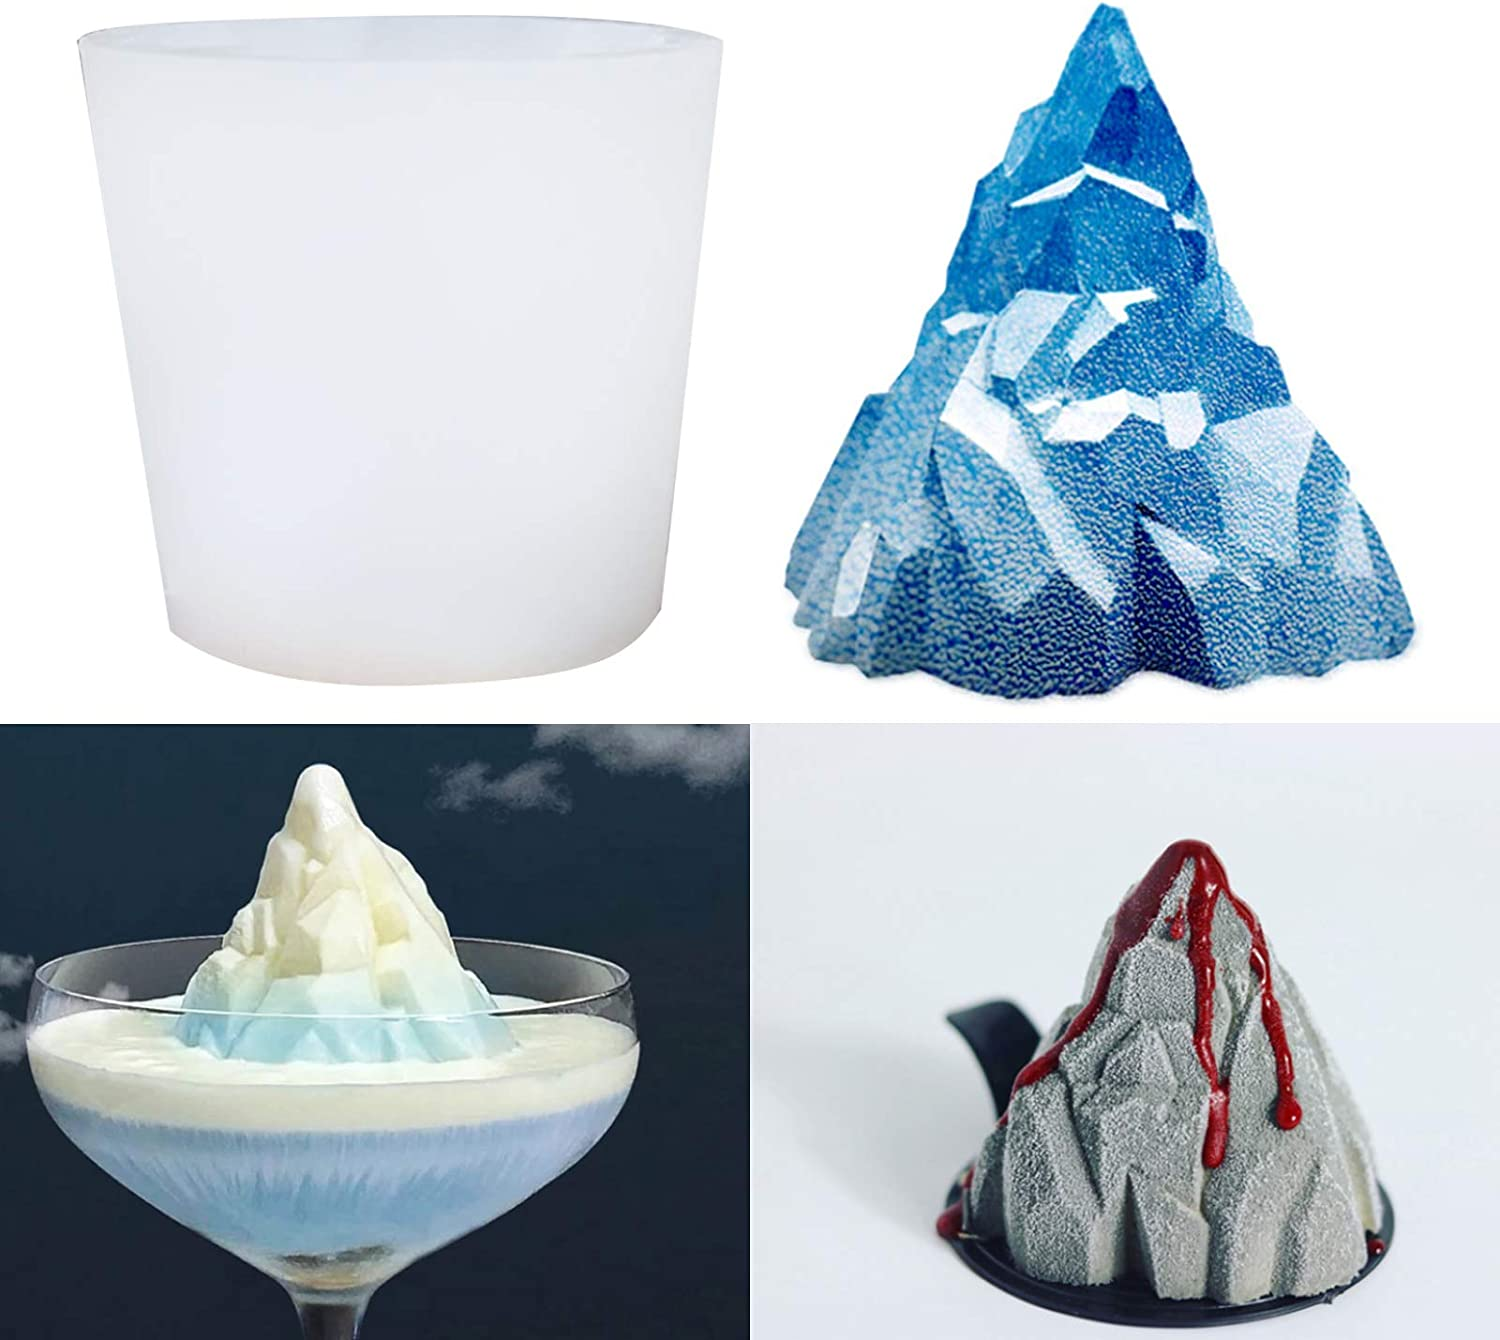 Sunsor 3D Snow Mountain Resin Volcano Mold Mail order cheap Max 71% OFF Silicone Casting Moul